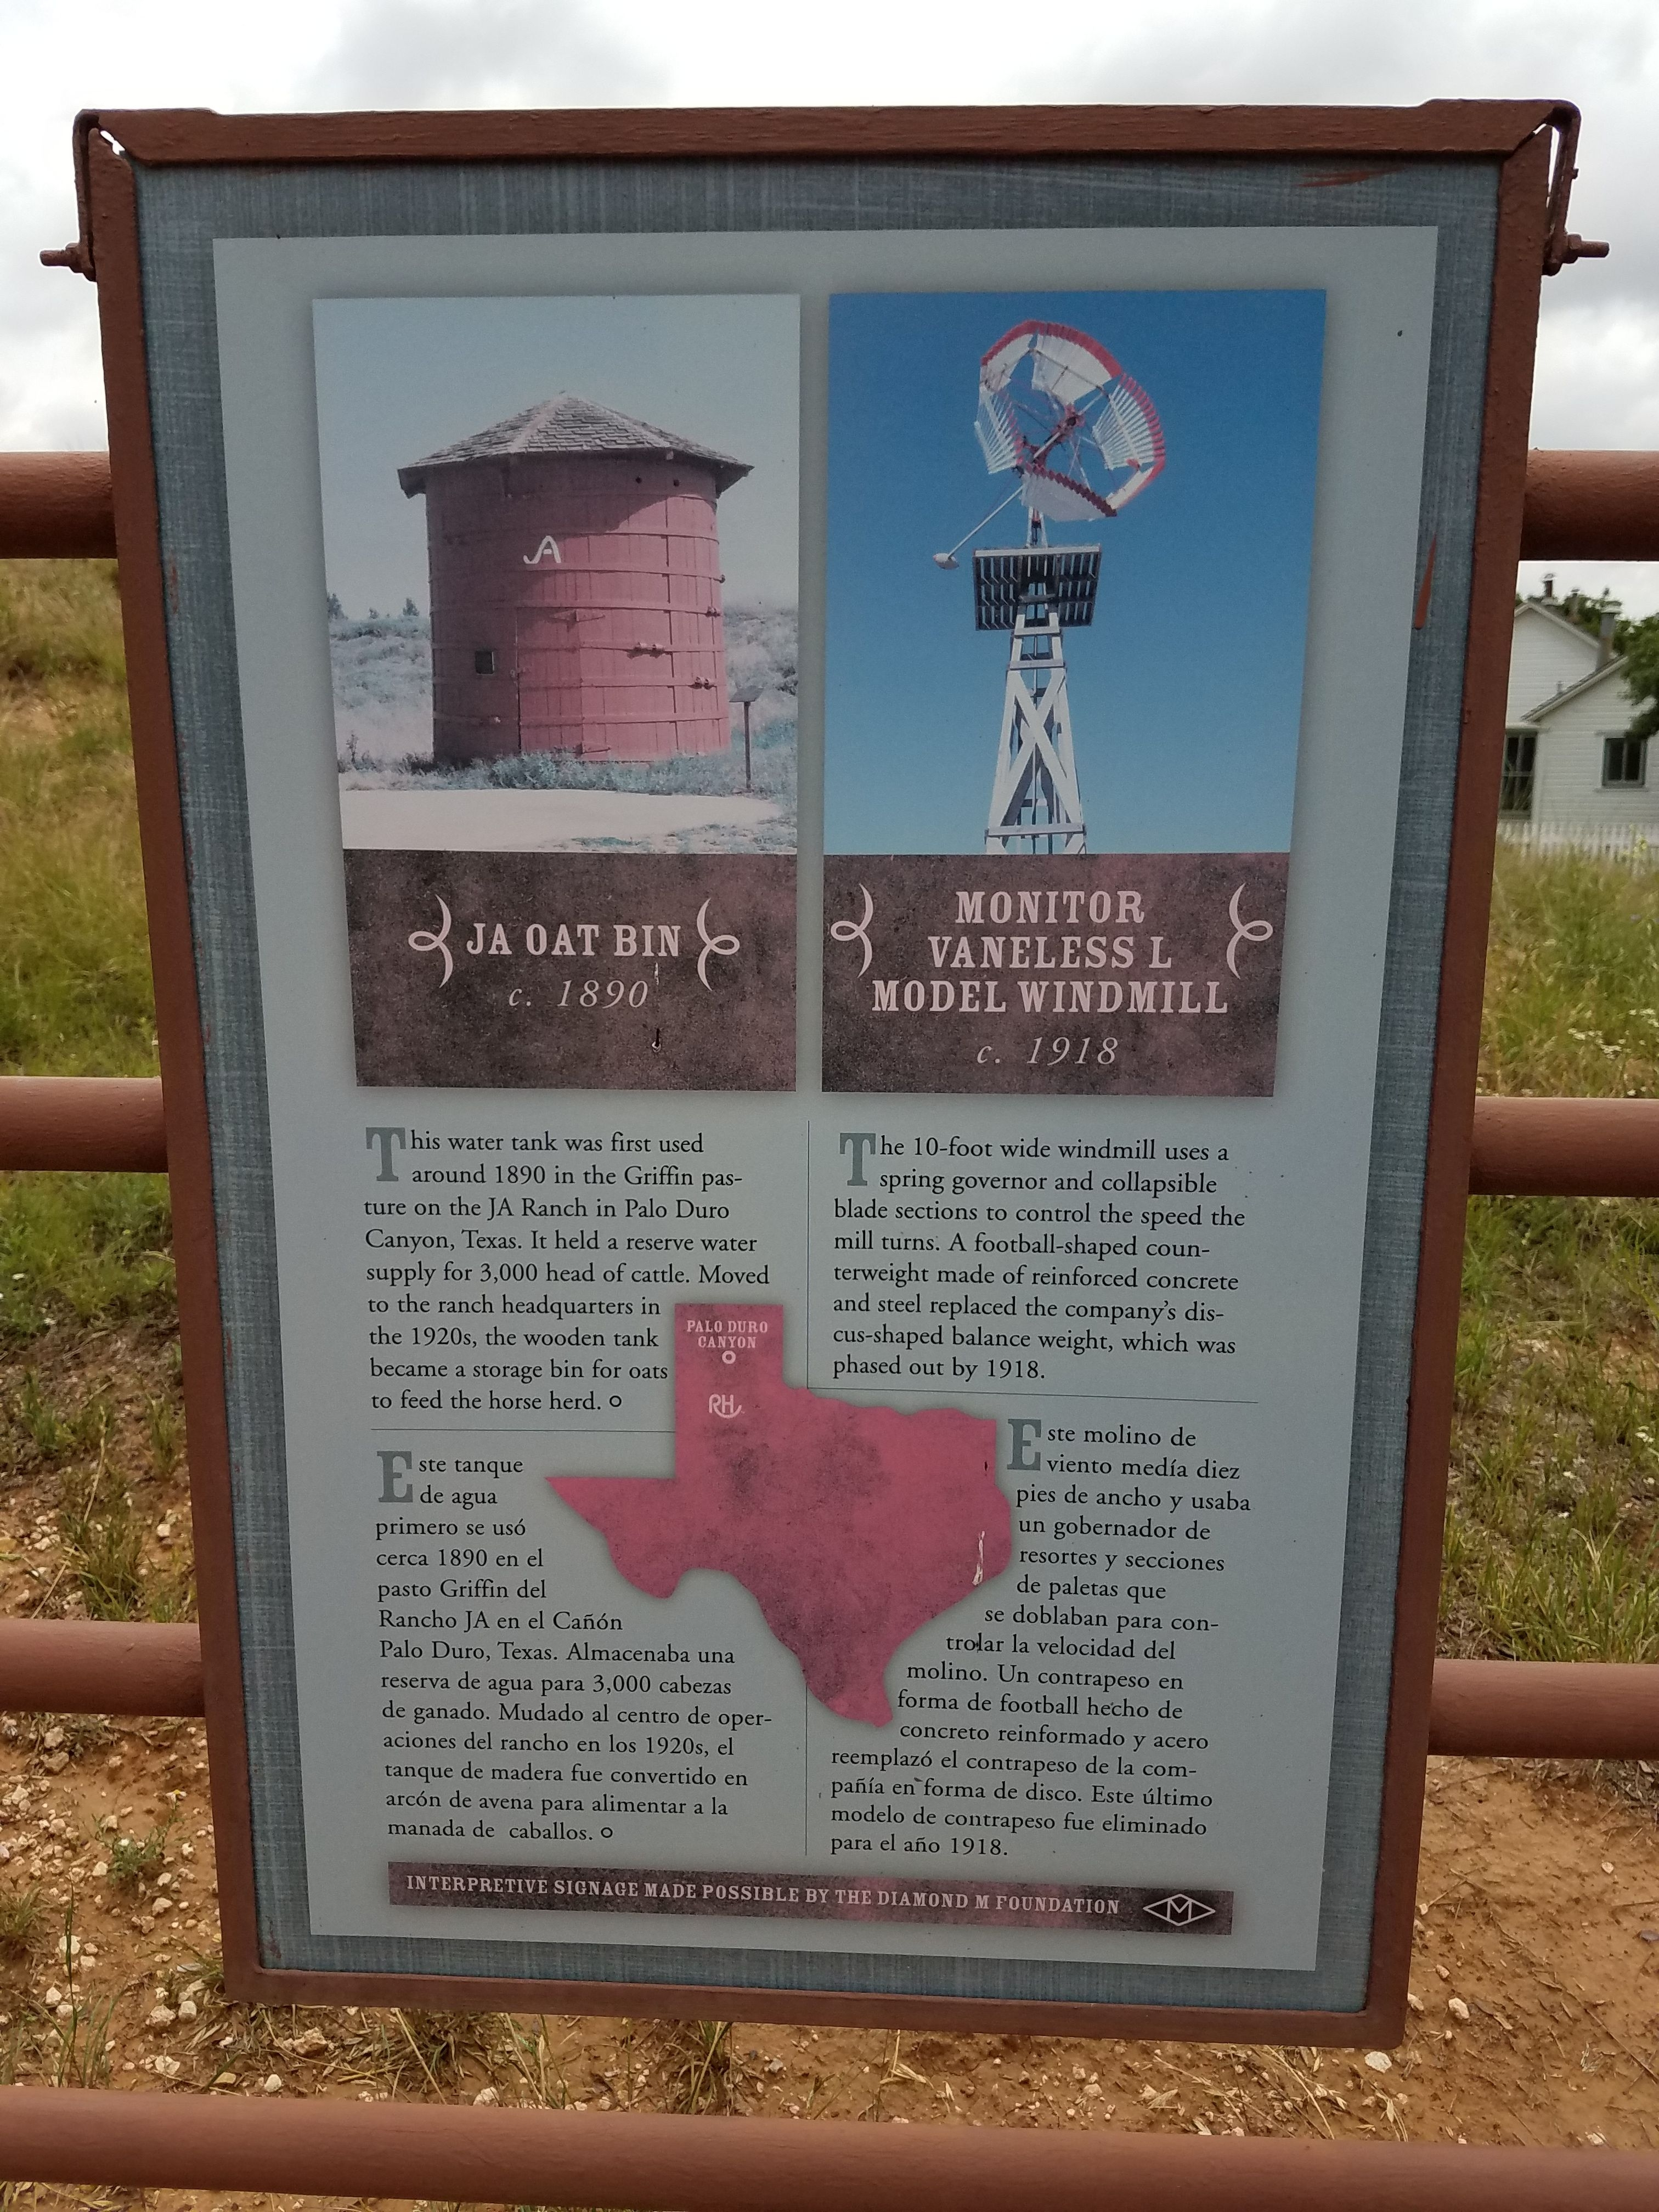 JA Oat Bin and Monitor Vaneless L Model Windmill Marker